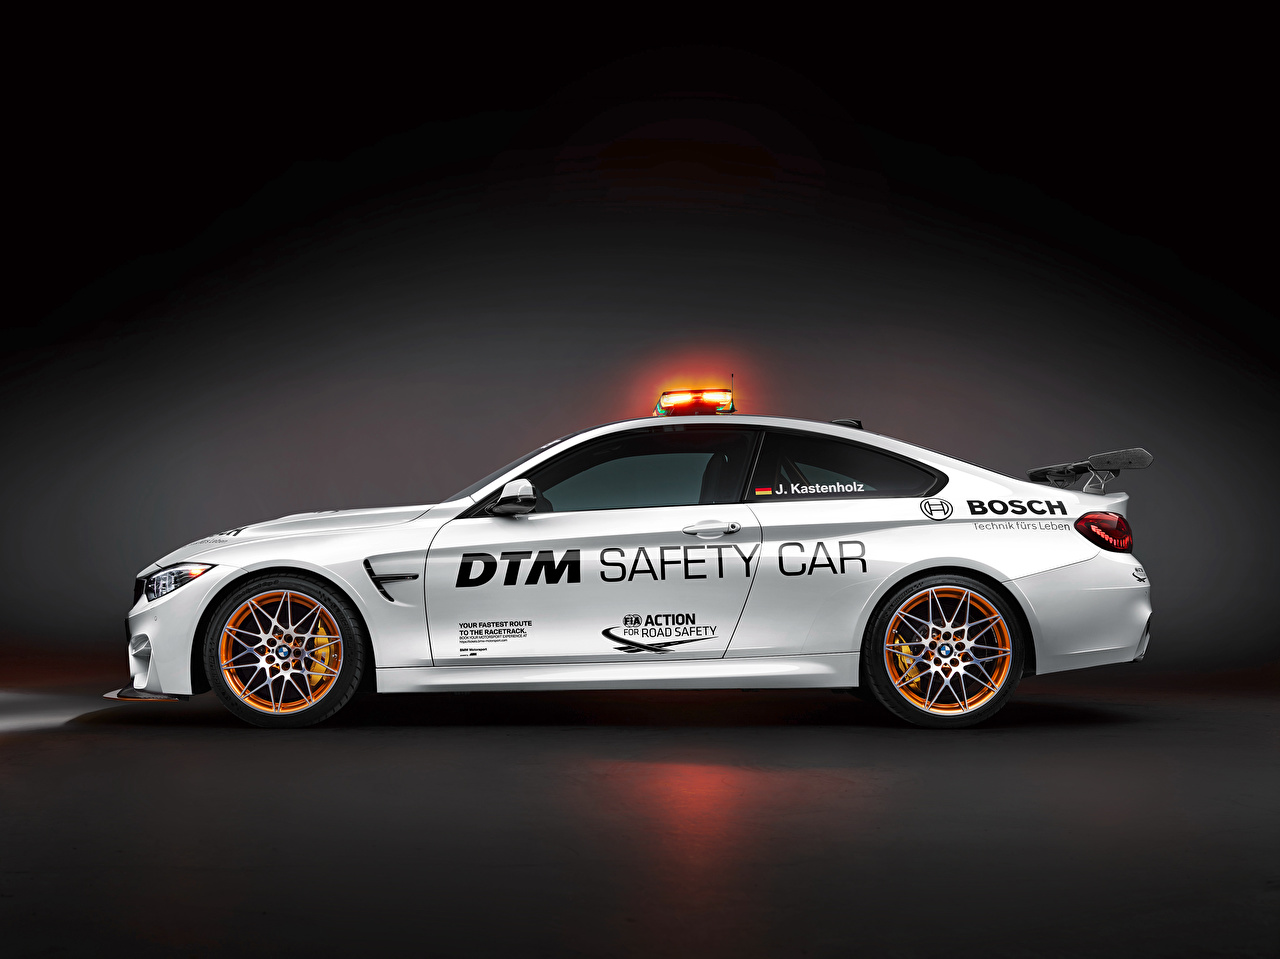 Desktop Wallpapers BMW DTM GTS F82 Safety Car White Side Cars auto automobile